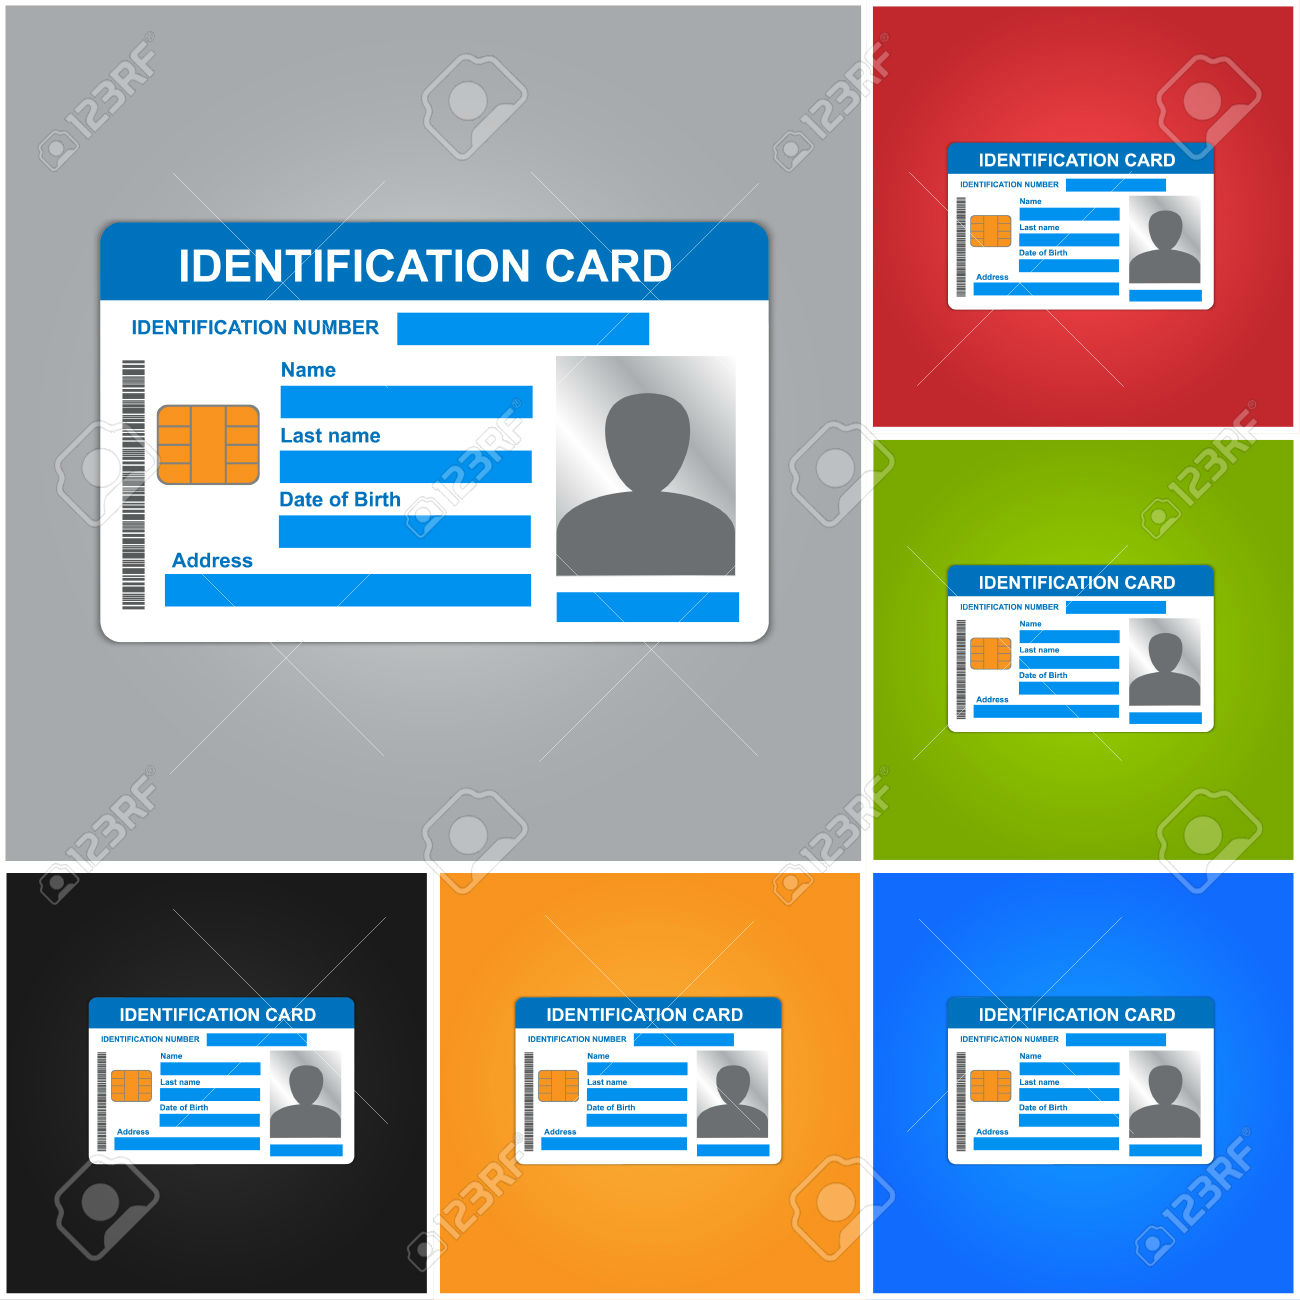 11+ Iconic Student Card Templates - Ai, Psd, Word | Free Throughout Isic Card Template